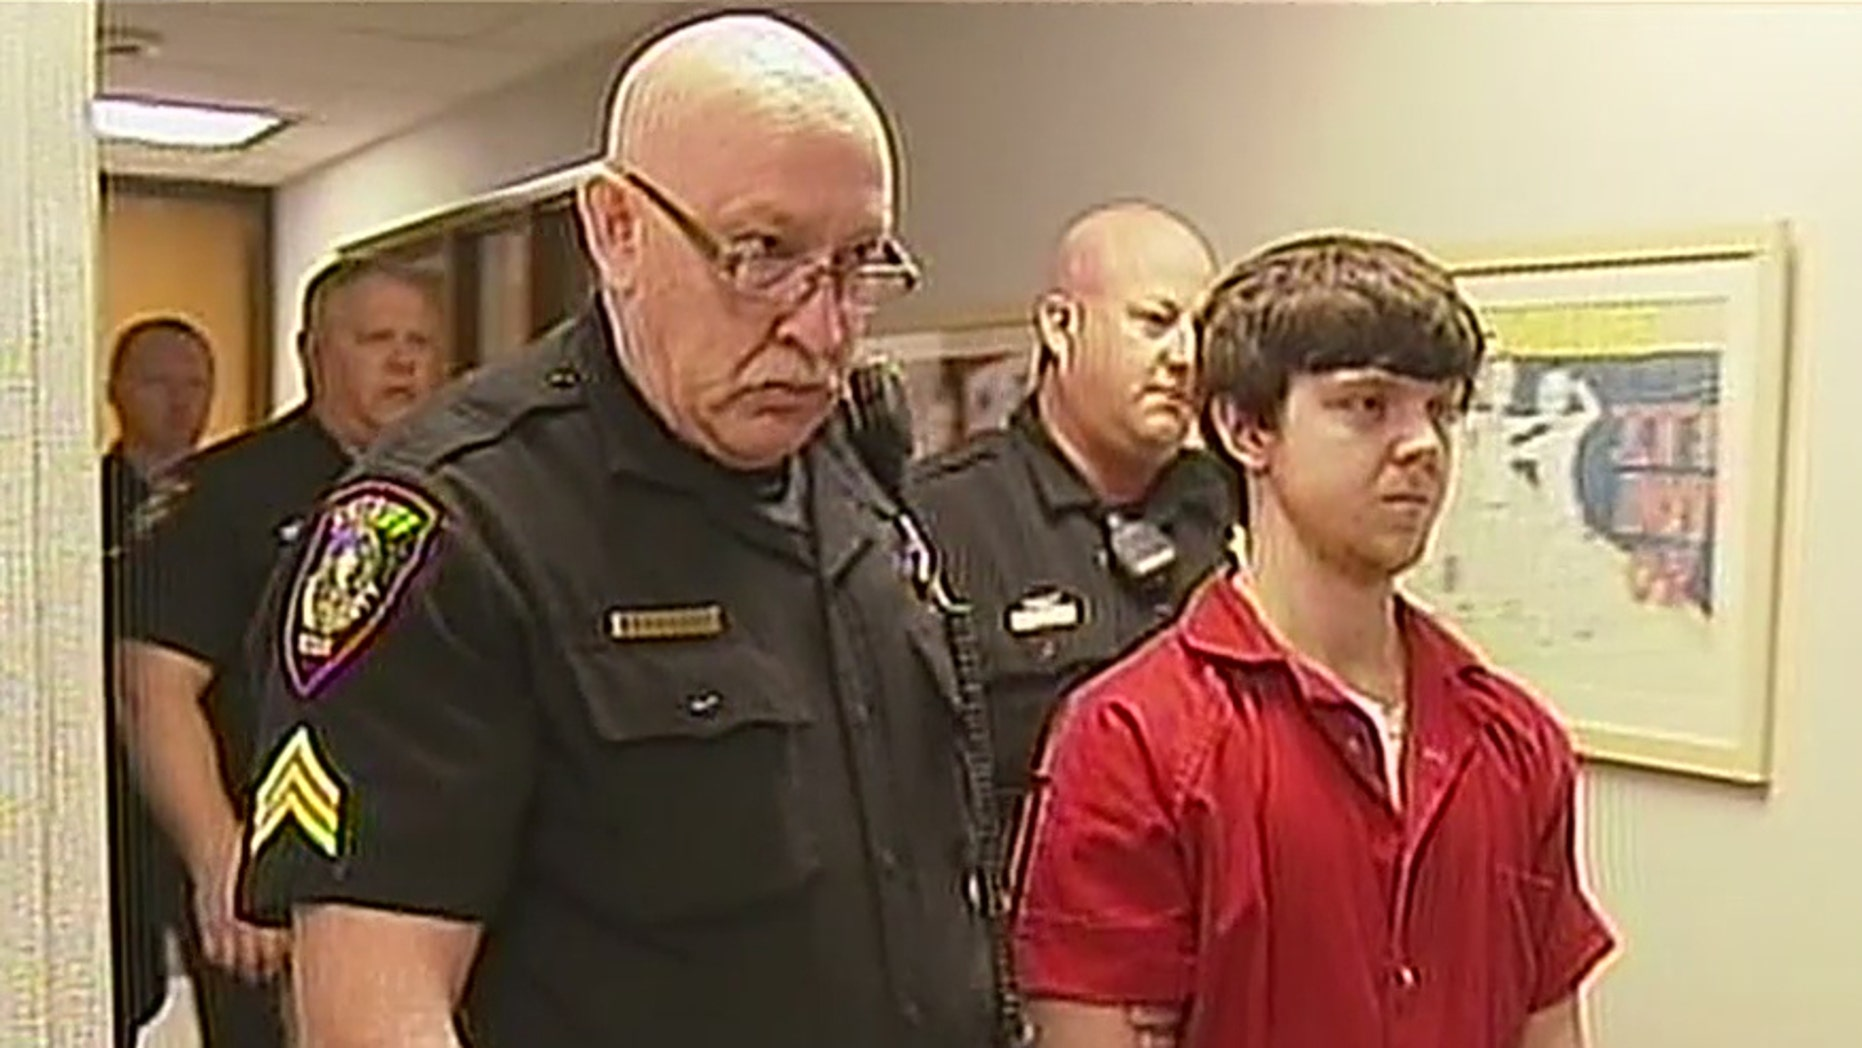 Texas' Supreme Court on Thursday denied Ethan Couch's appeal.